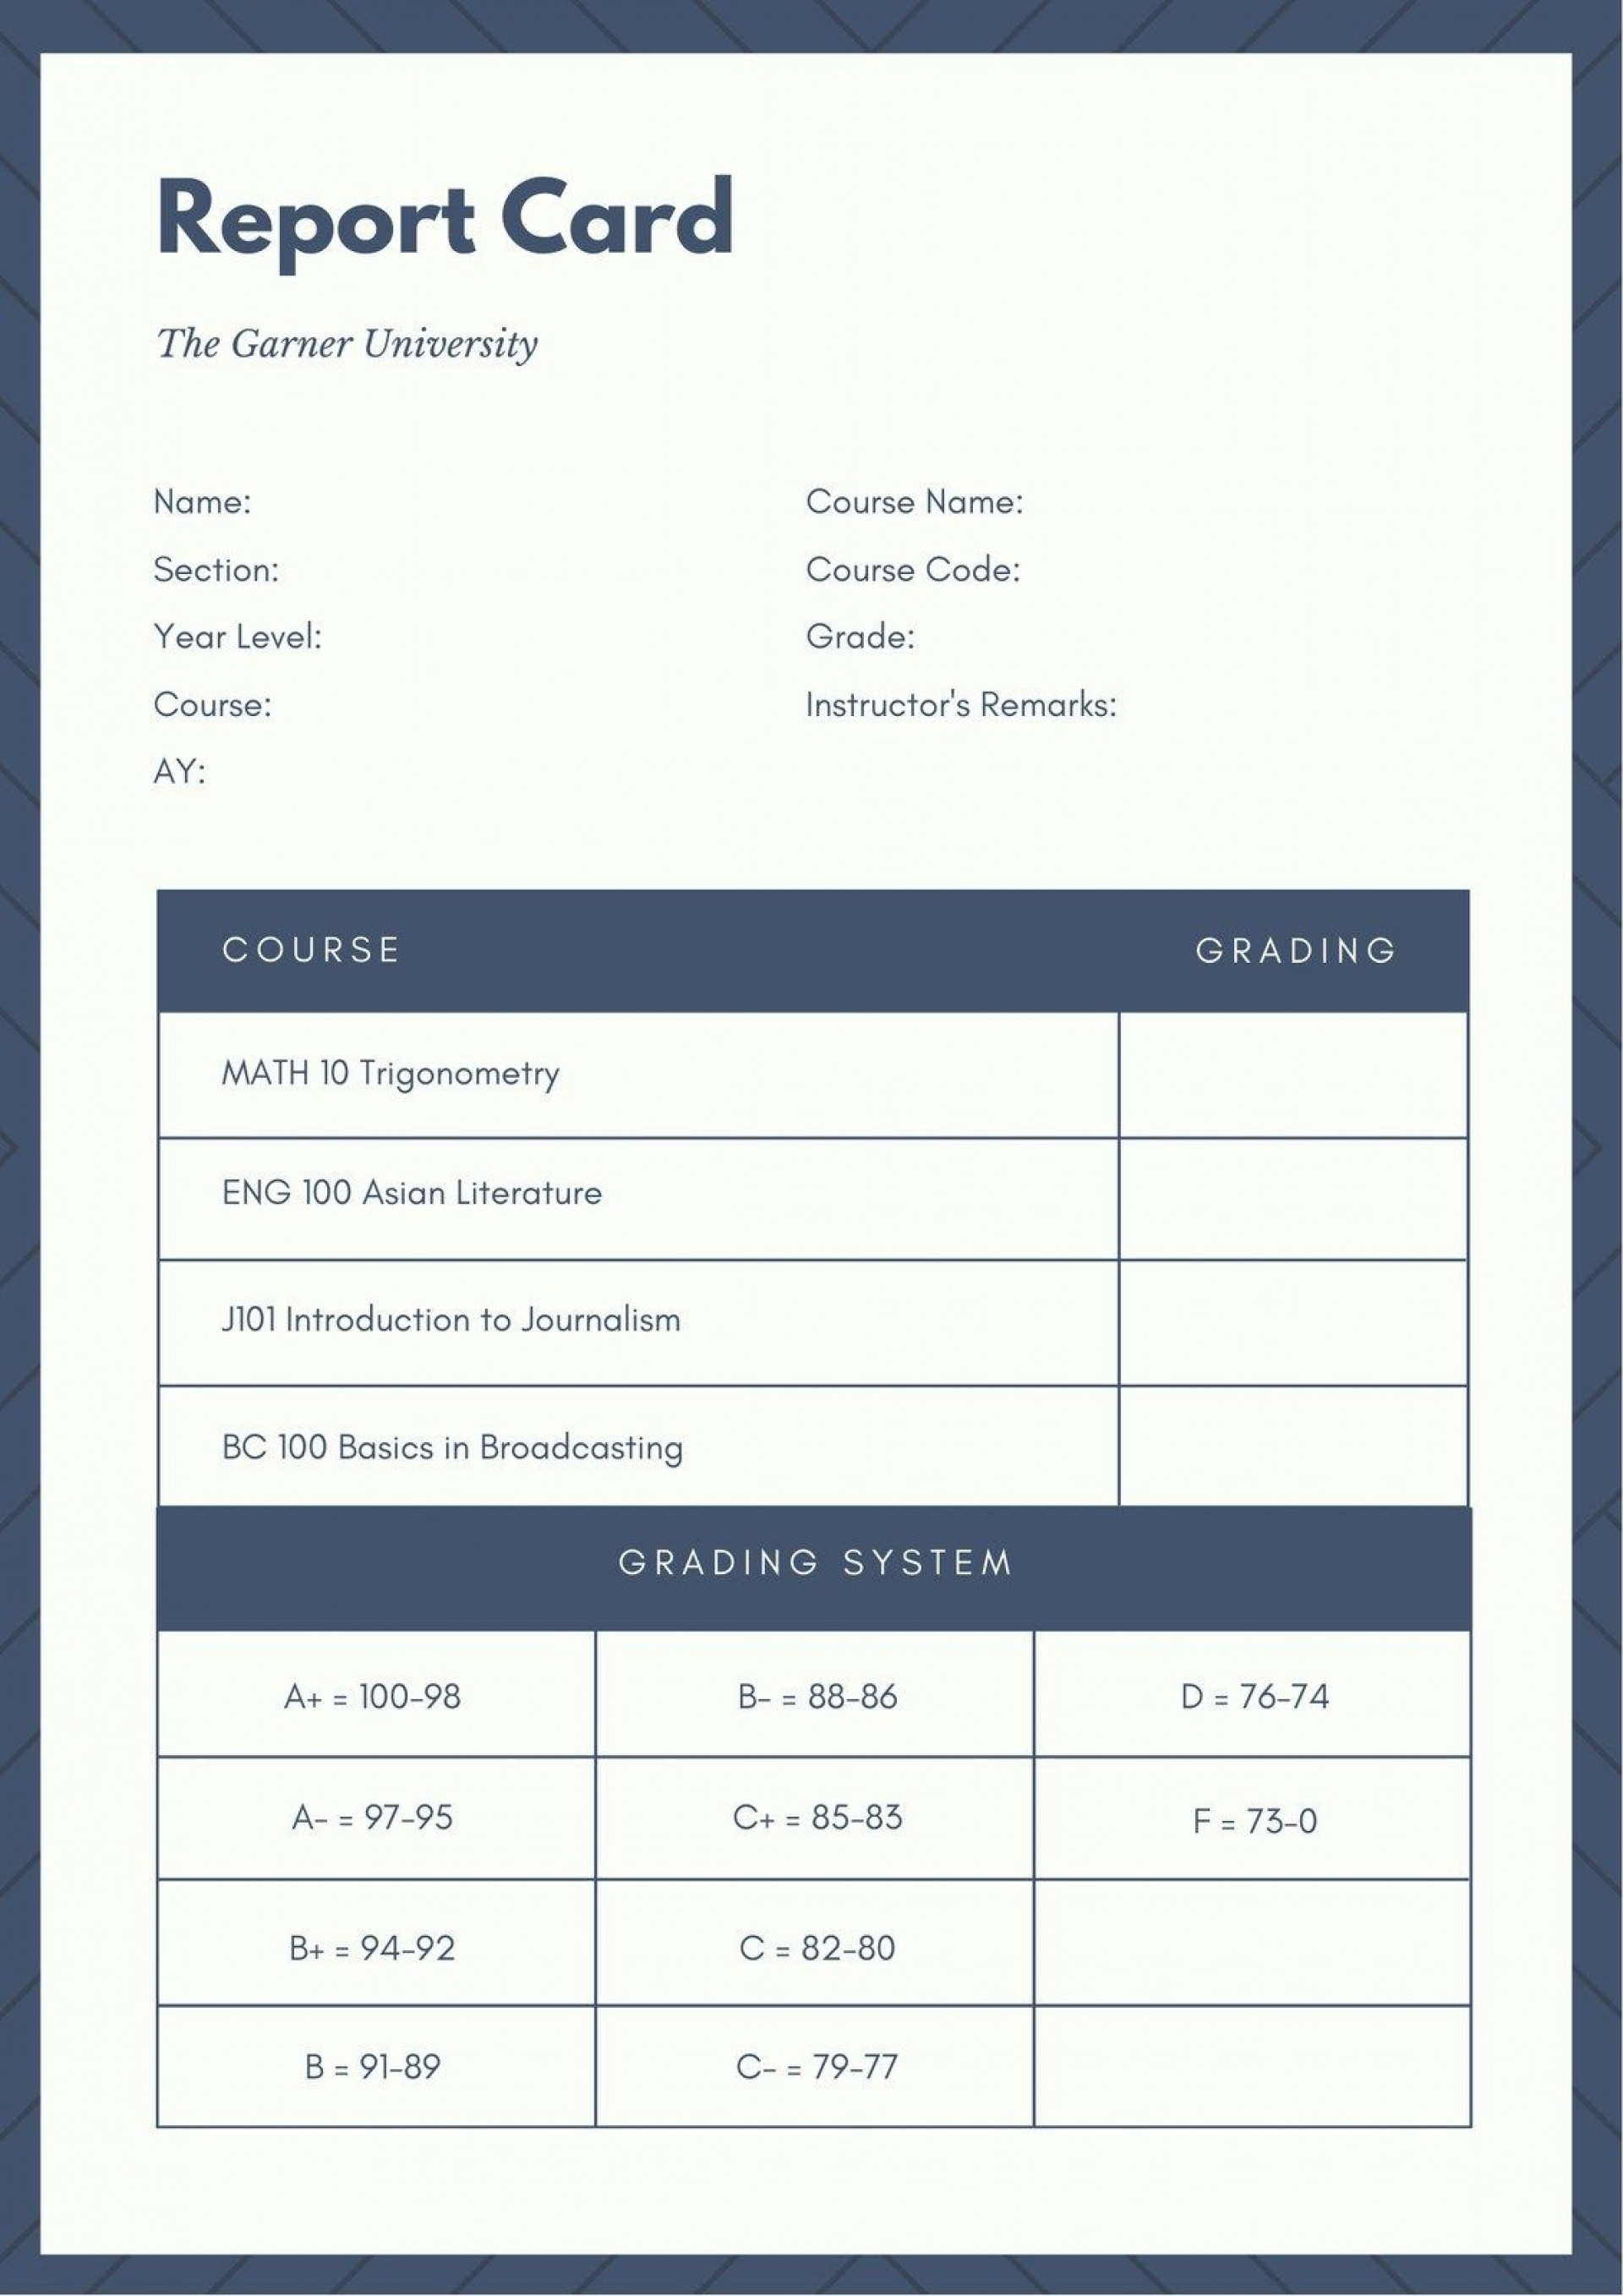 006 Unusual College Report Card Template Inspiration  Free Fake1920